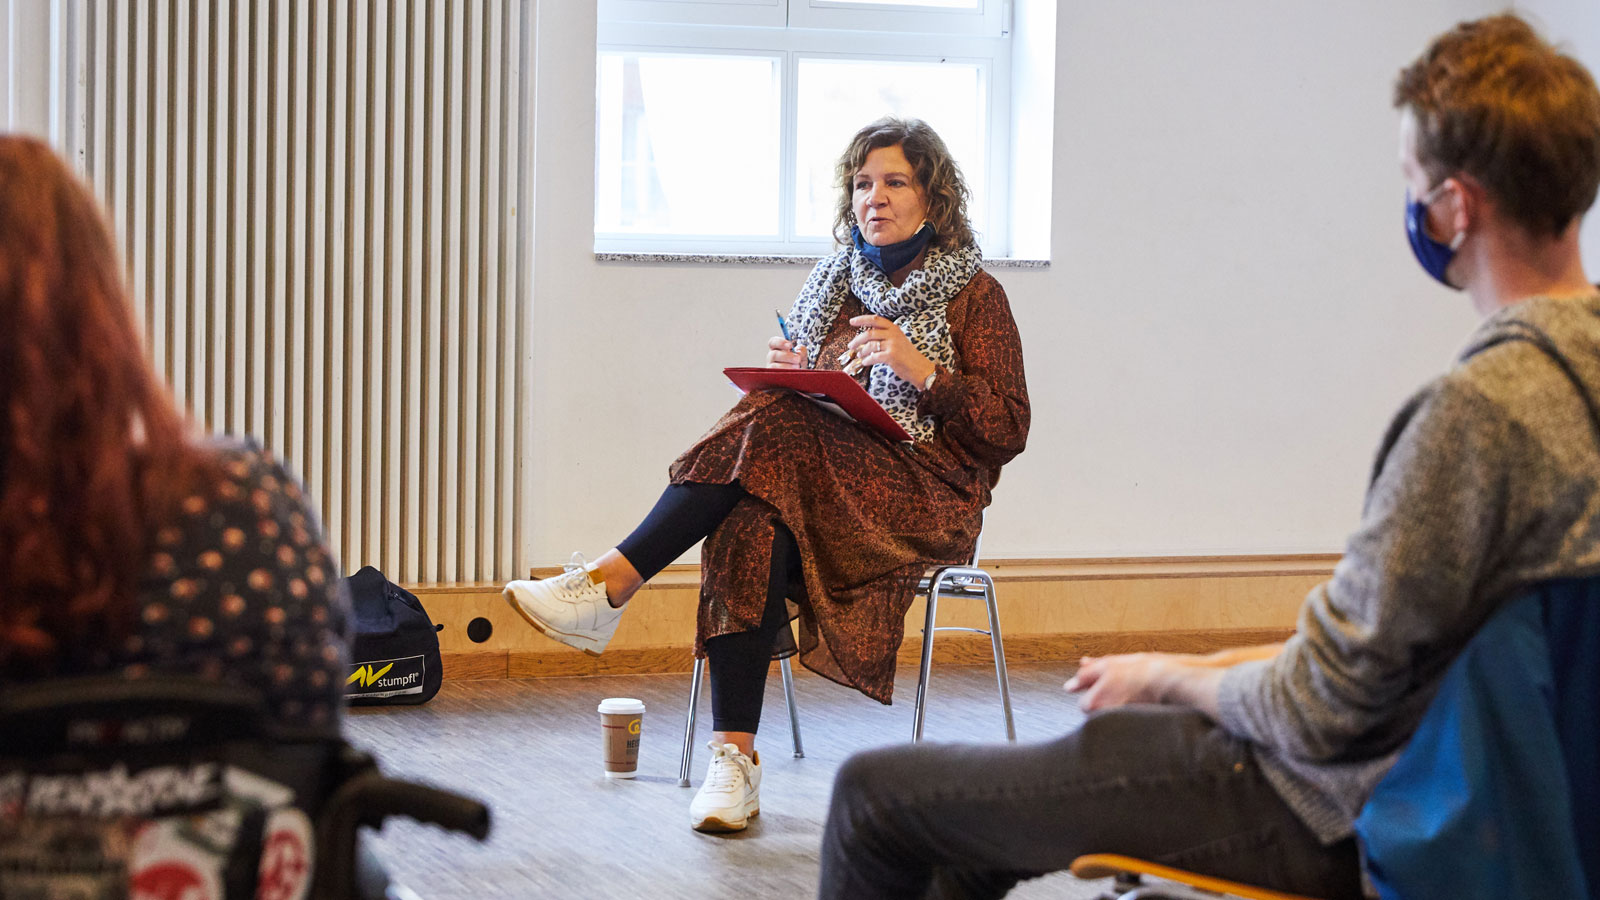 At the ALL IN Symposium. Bettina Masuch is sitting on a chair. She talks to people who are participating in her workshop. ©Anna Spindelndreier